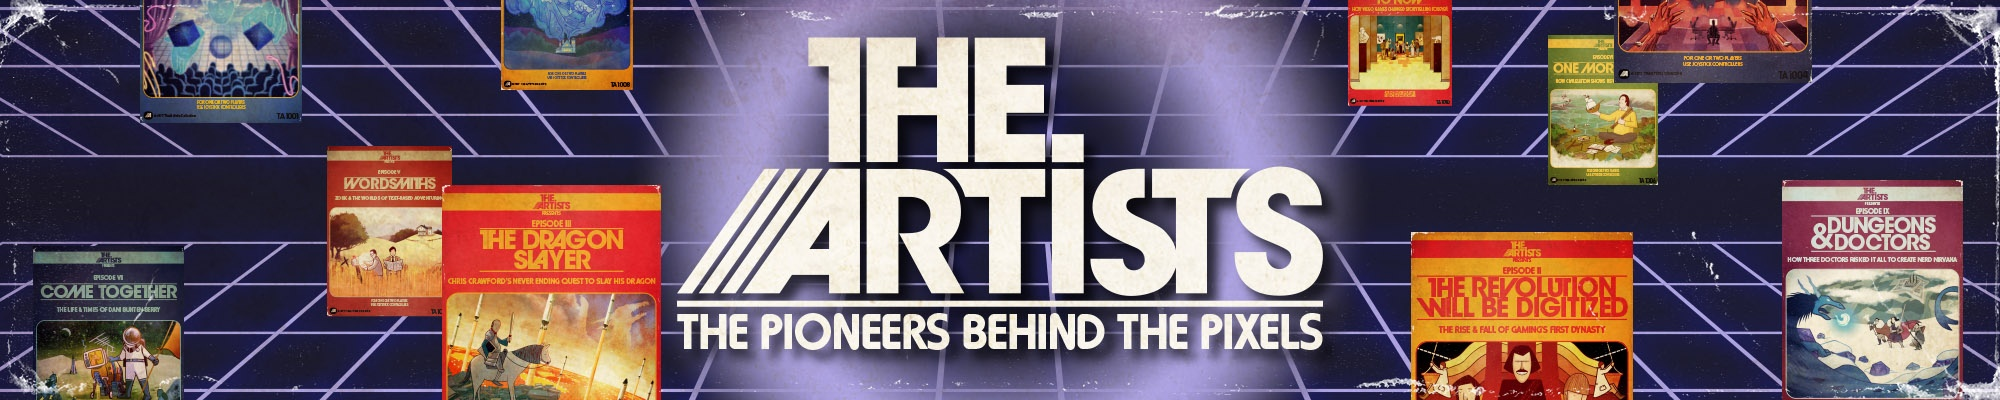 theartists Cover